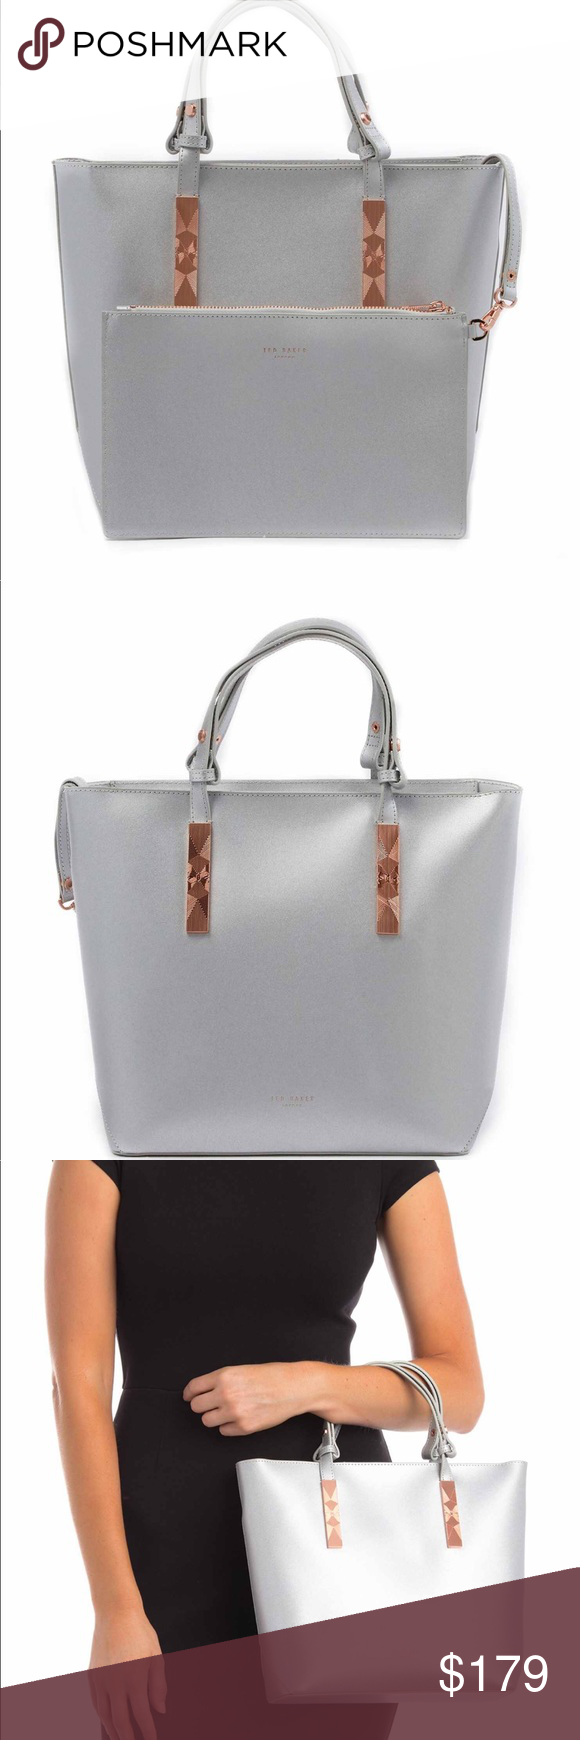 35d30fad2 Ted Baker Kaceyy Metallic Silver Shopper NWT Ted Baker Kaceyy Metallic Silver  Leather Shopper Tote Bag Purse Ted Baker Bags Totes